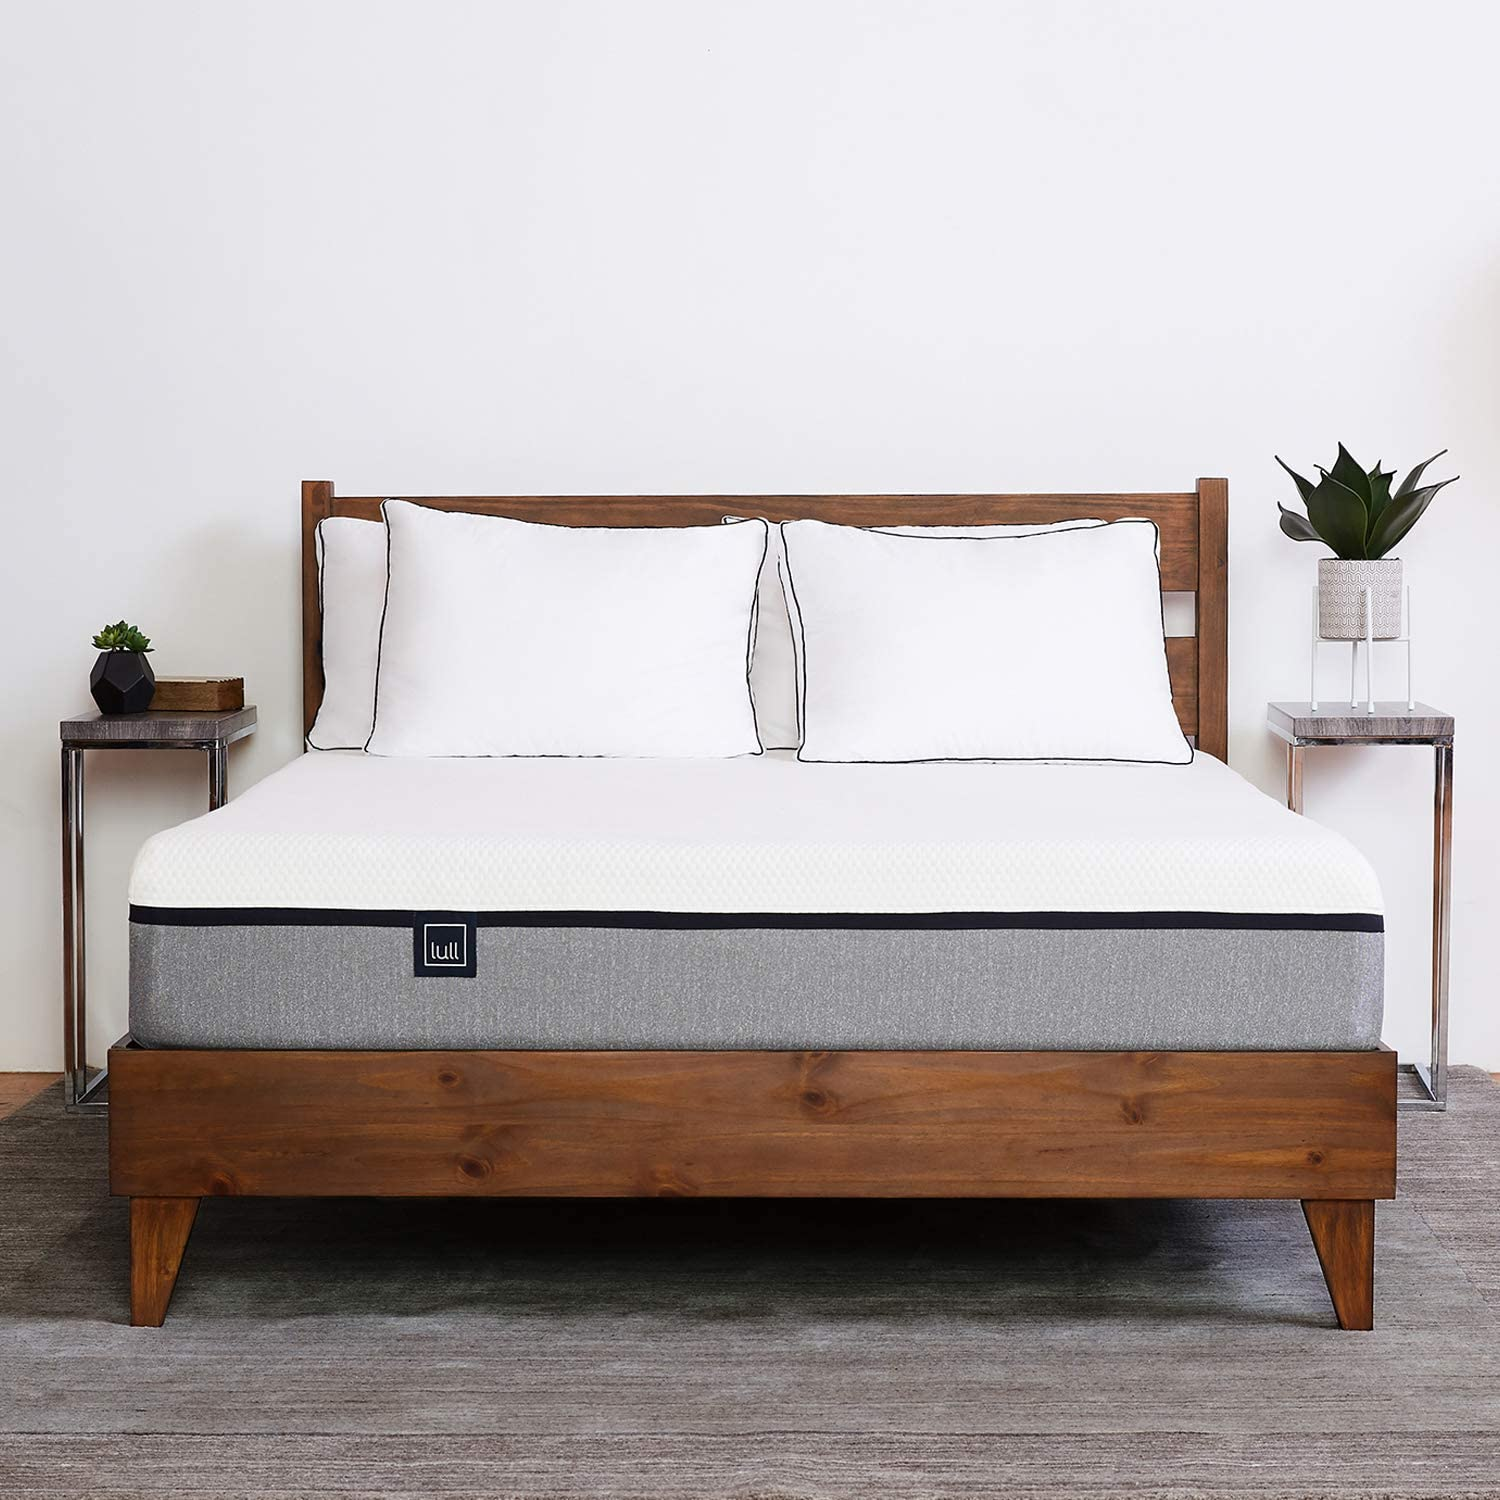 Lull – Memory Foam Mattress 3 Layers of Premium Memory Foam, Therapeutic Support, Breathable for Ideal Temperature, 100 Night Trial, and 10-Year Warranty